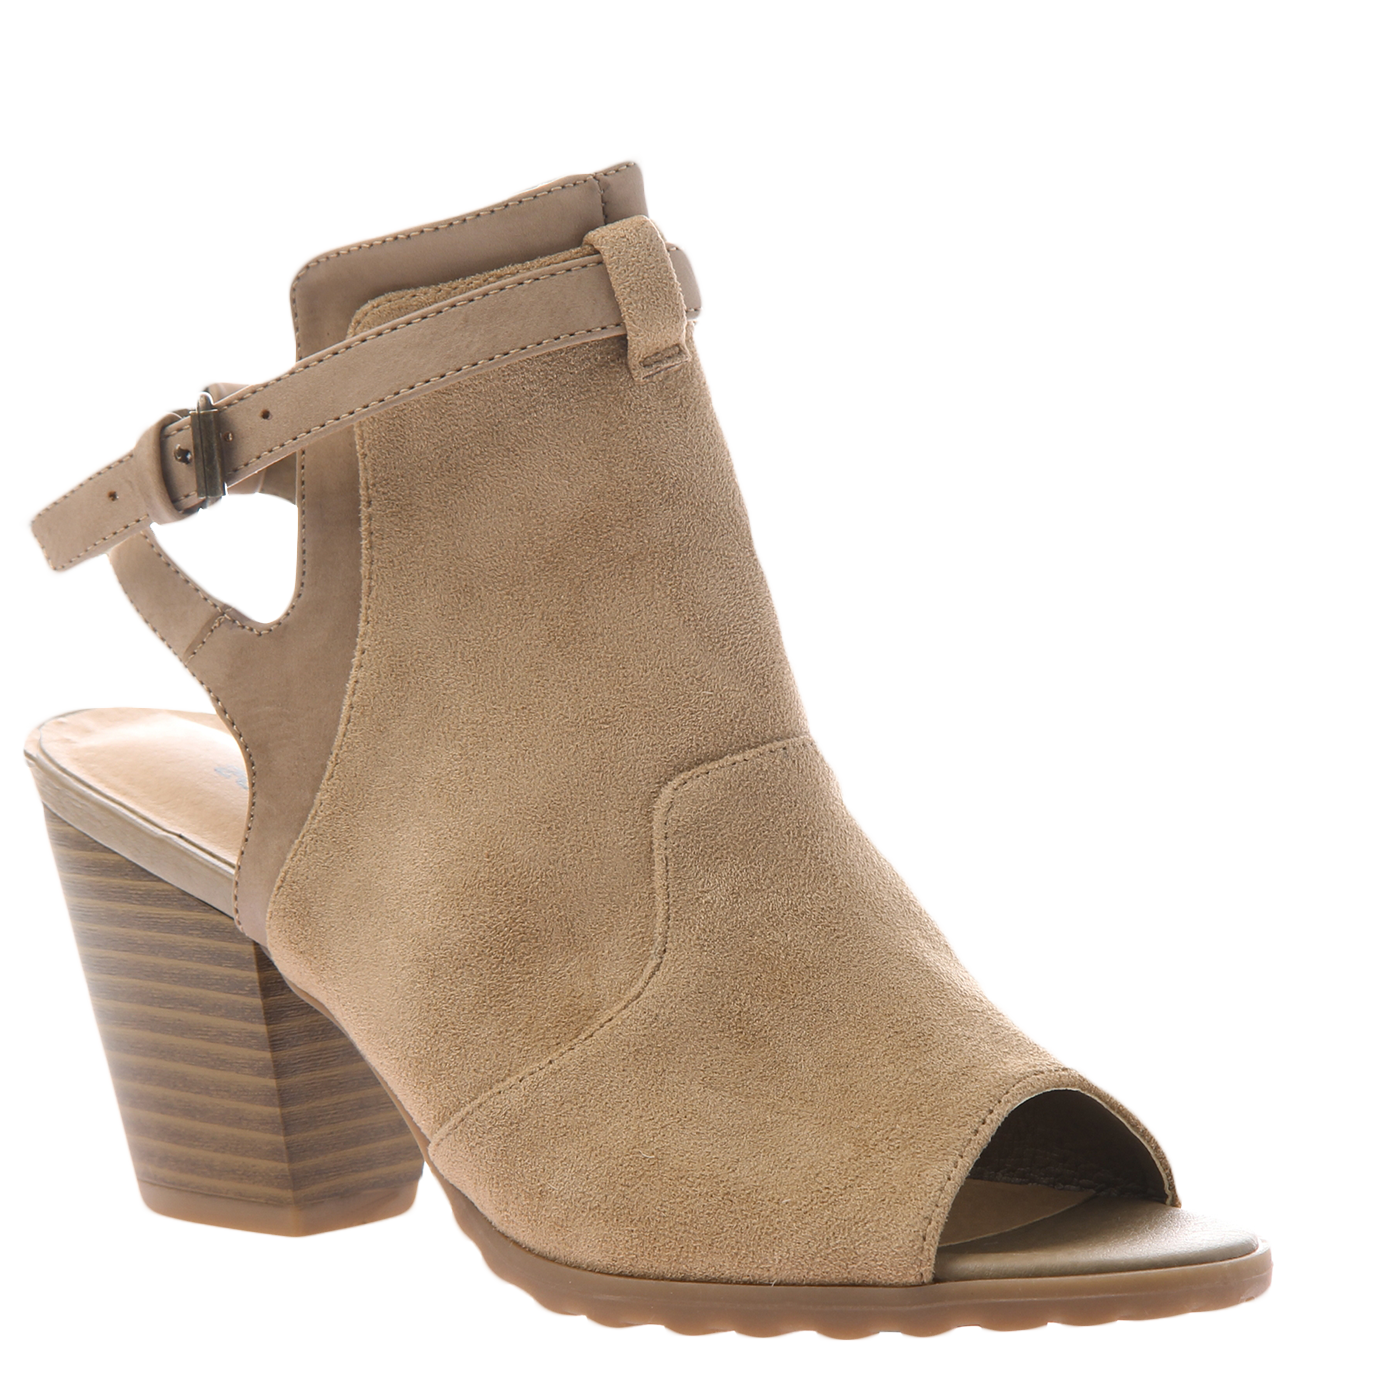 png transparent download Western in New Taupe Open Toe Booties